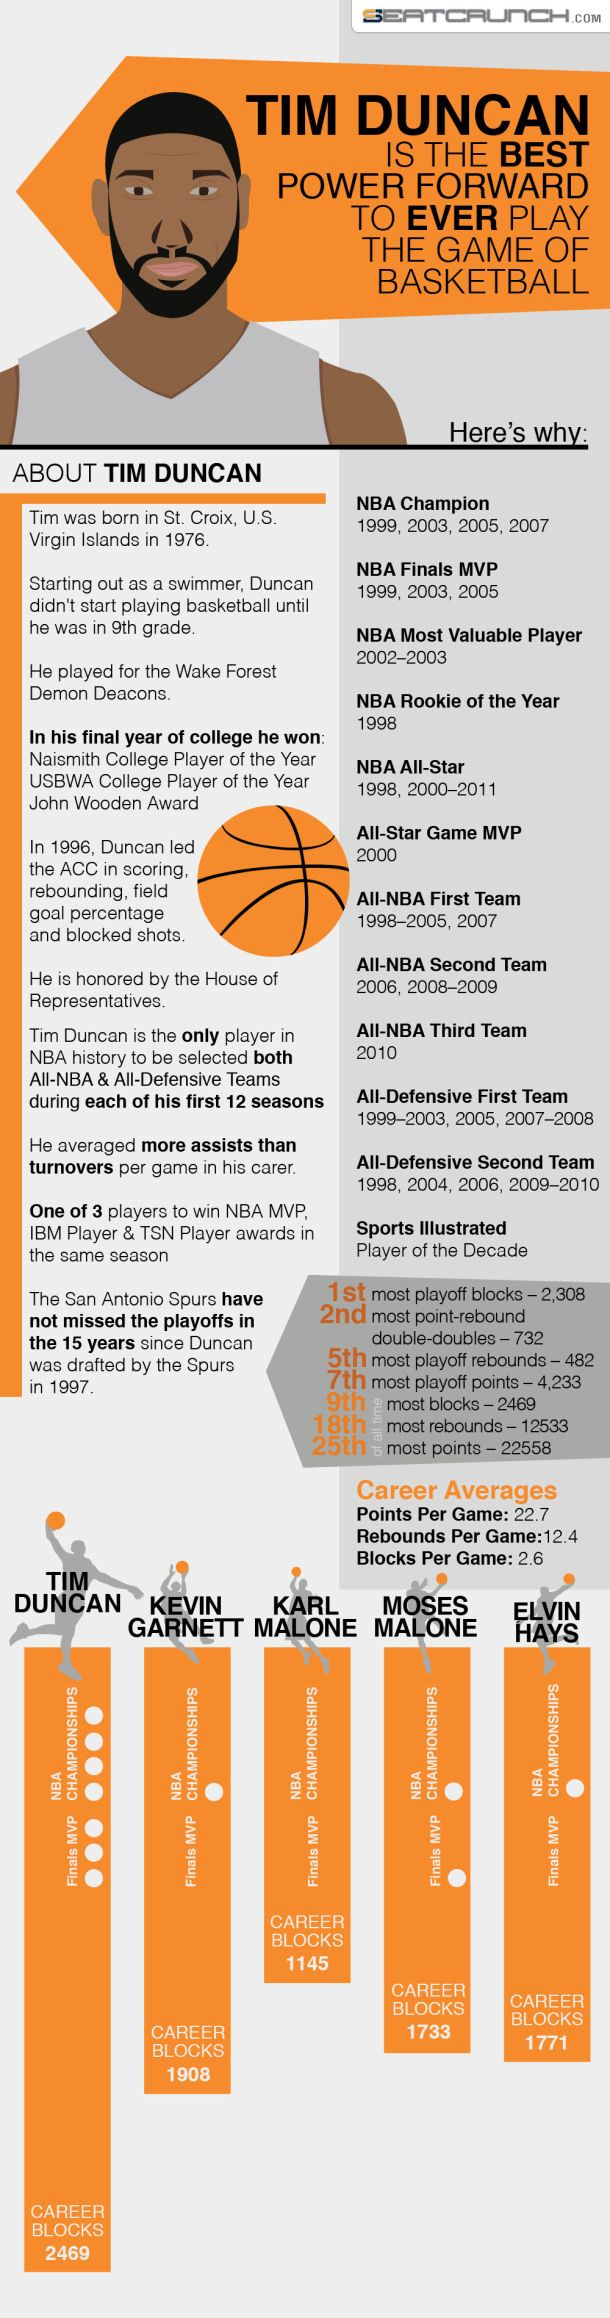 Tim Duncan Is The Best Power Forward To Ever Play The Game Of Basketball [INFOGRAPHIC] #TimDuncan #basketball